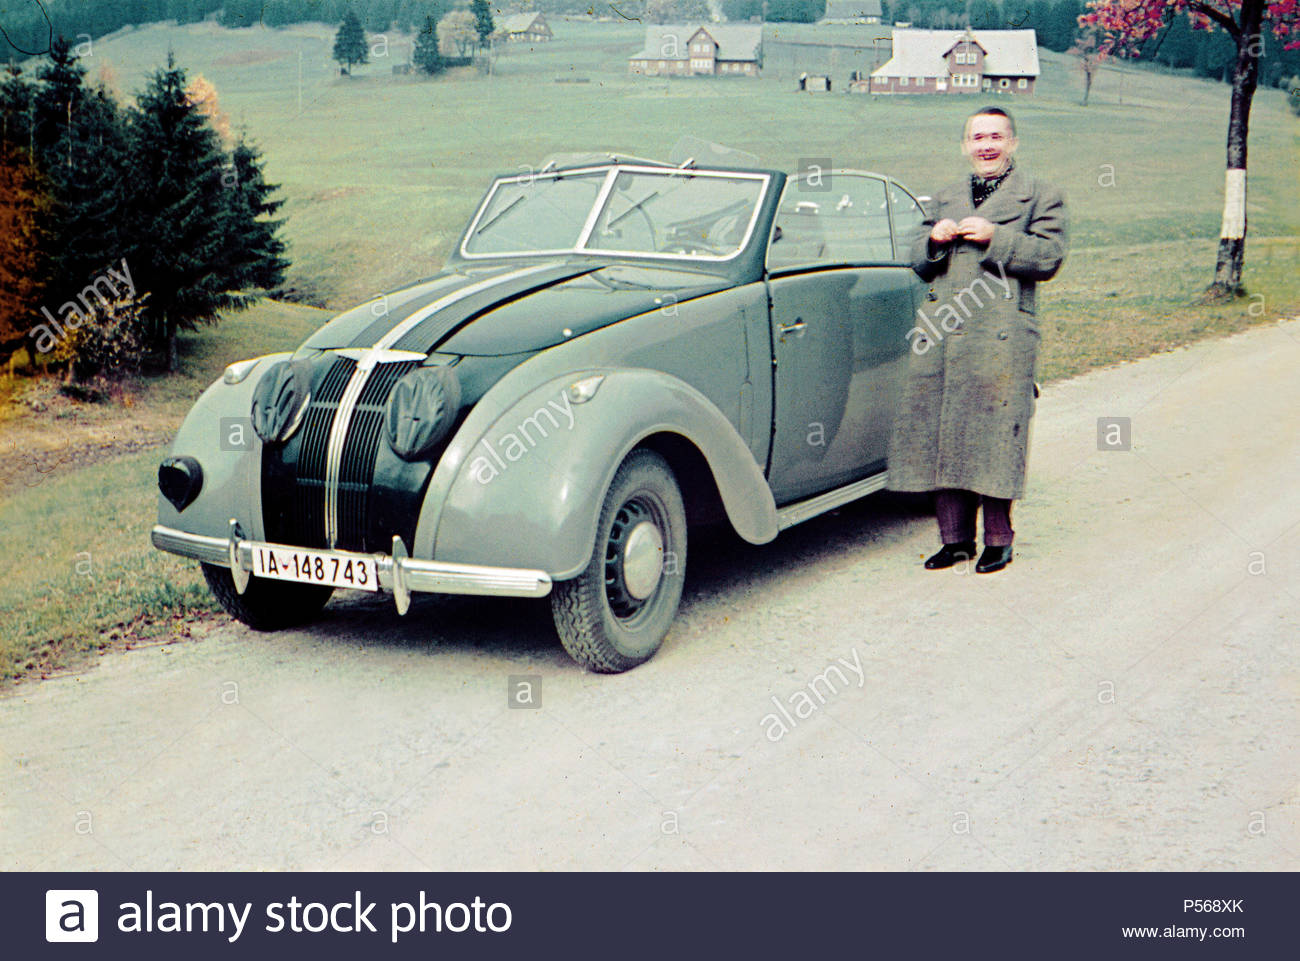 ADLER 2.5L CONVERTIBLE 1937. BERLIN FAMILY DOING HOLIDAY IN SUDETENLAND CZECHOSLOVAKIA 1939 - Stock Image